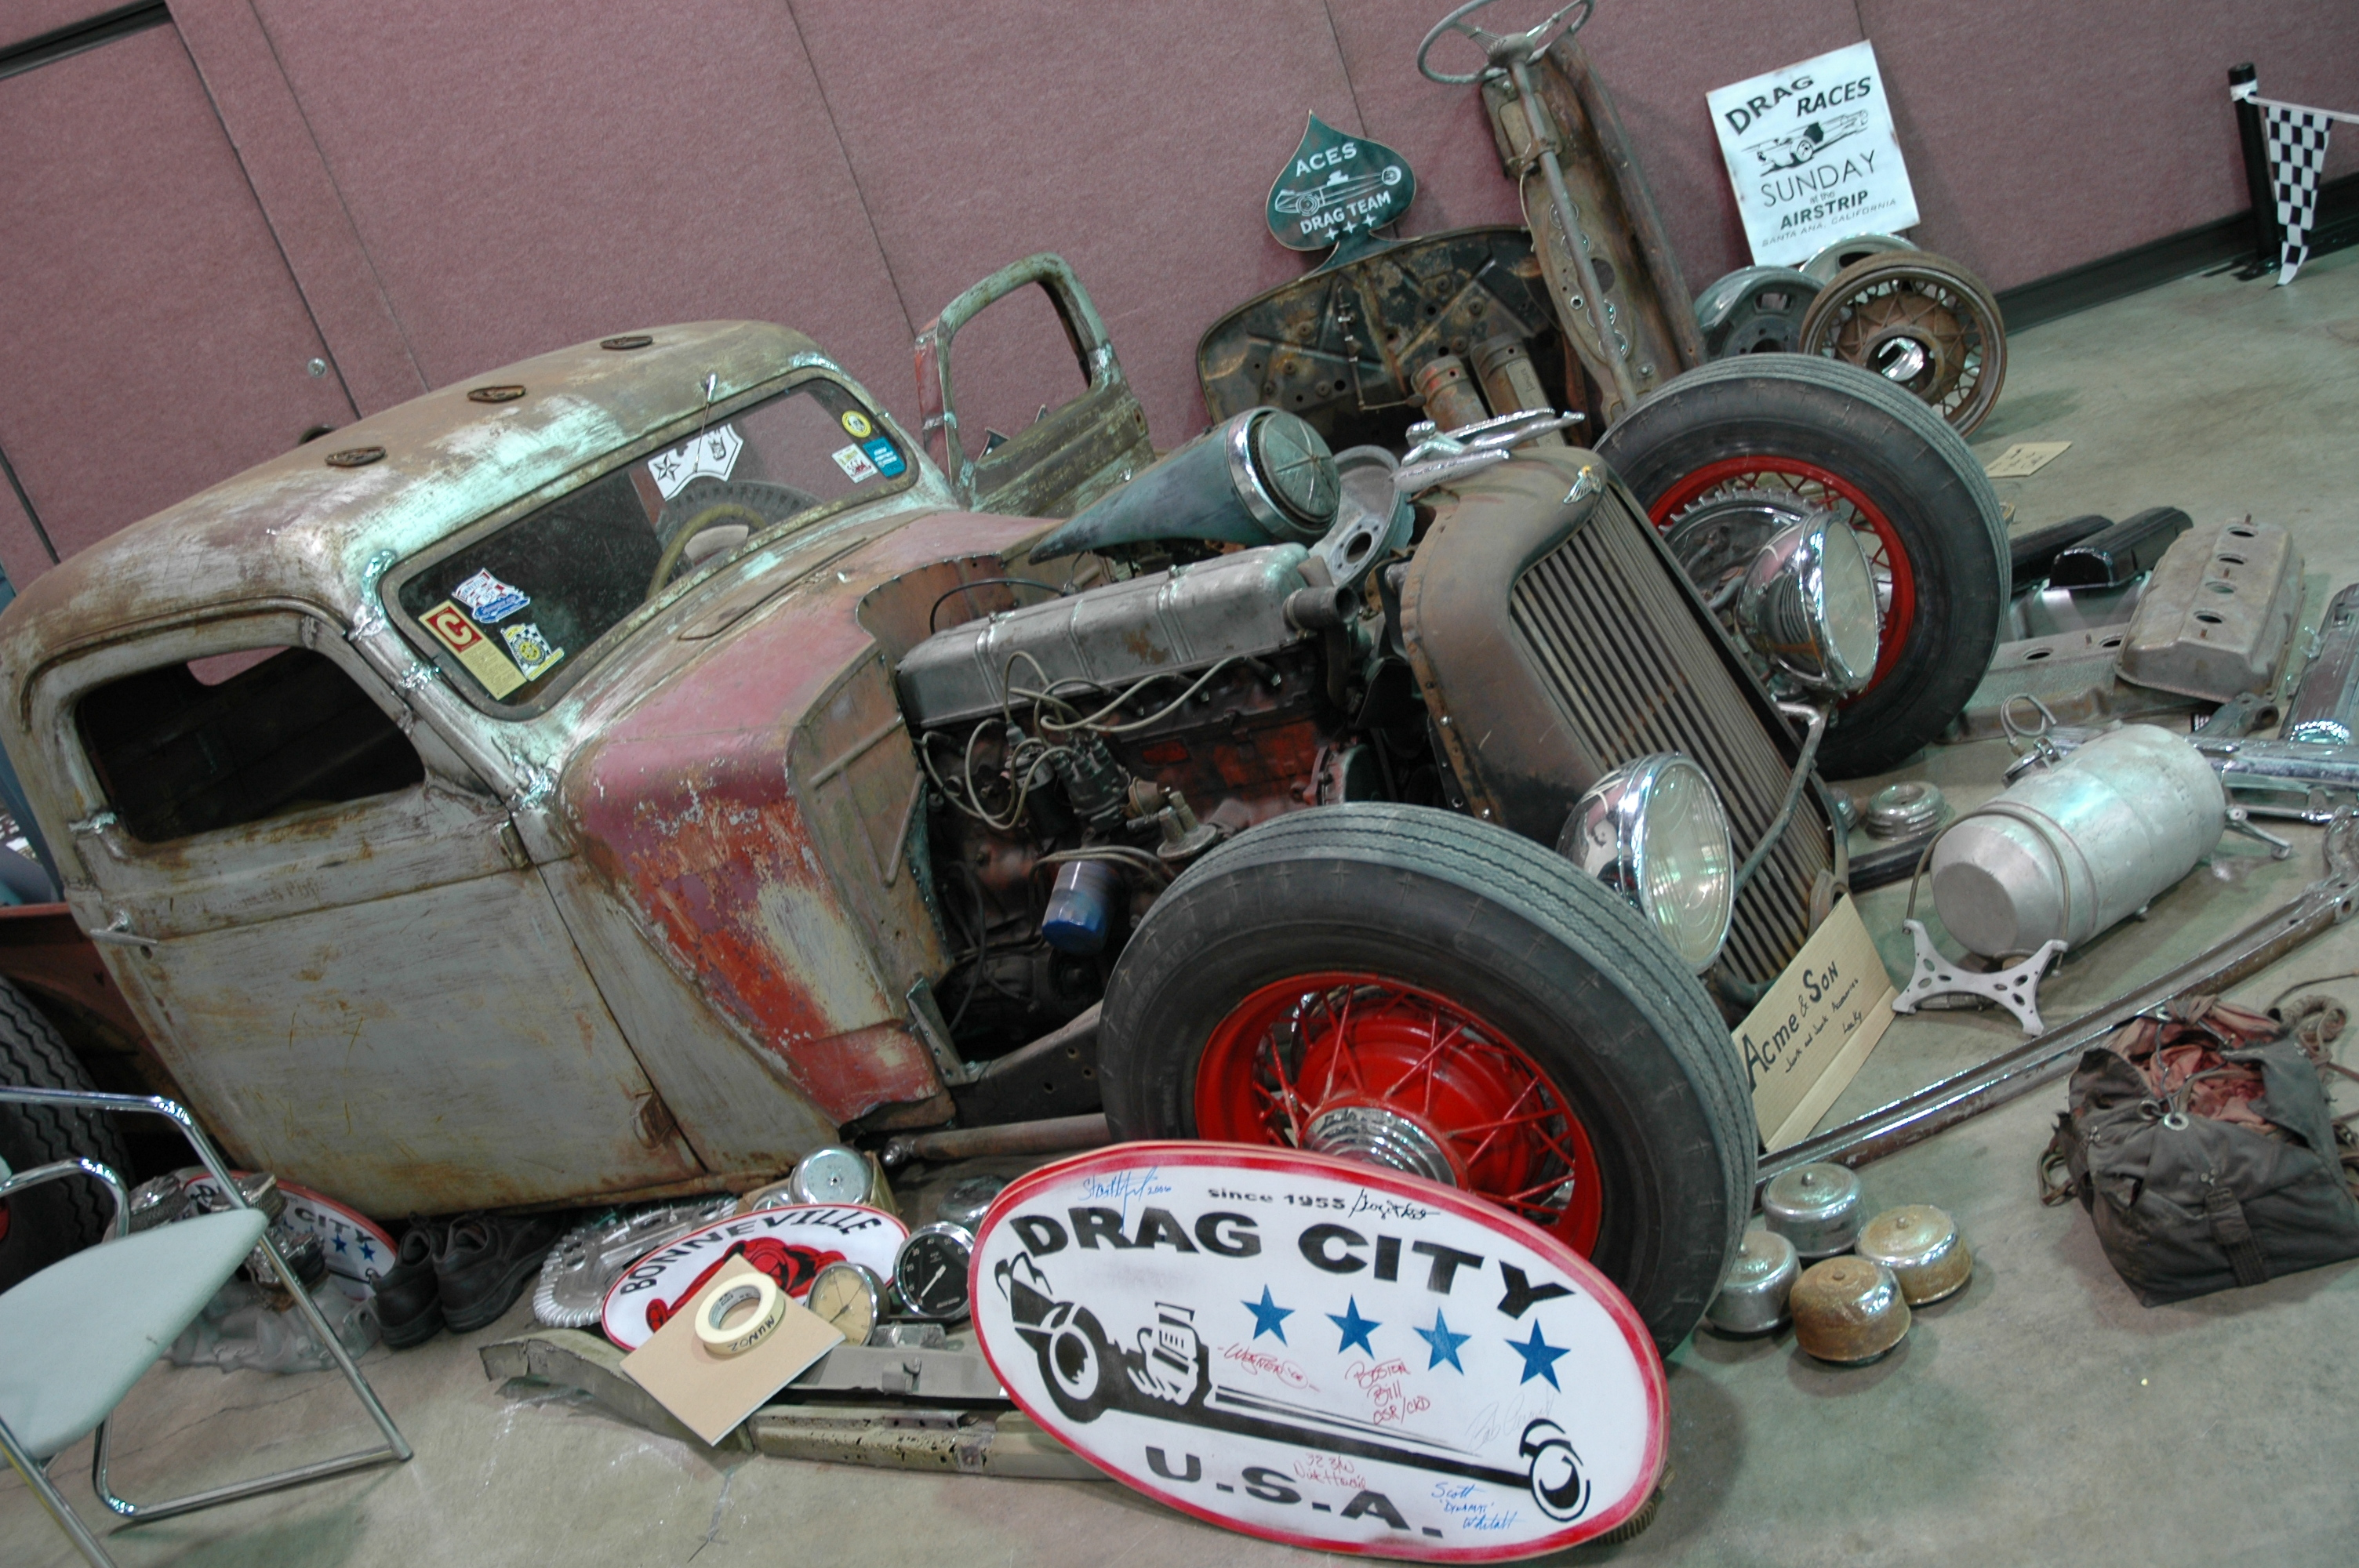 Motor City Rat Rodsrat Rod Pickup Truck Rat Rod Pickup Truck